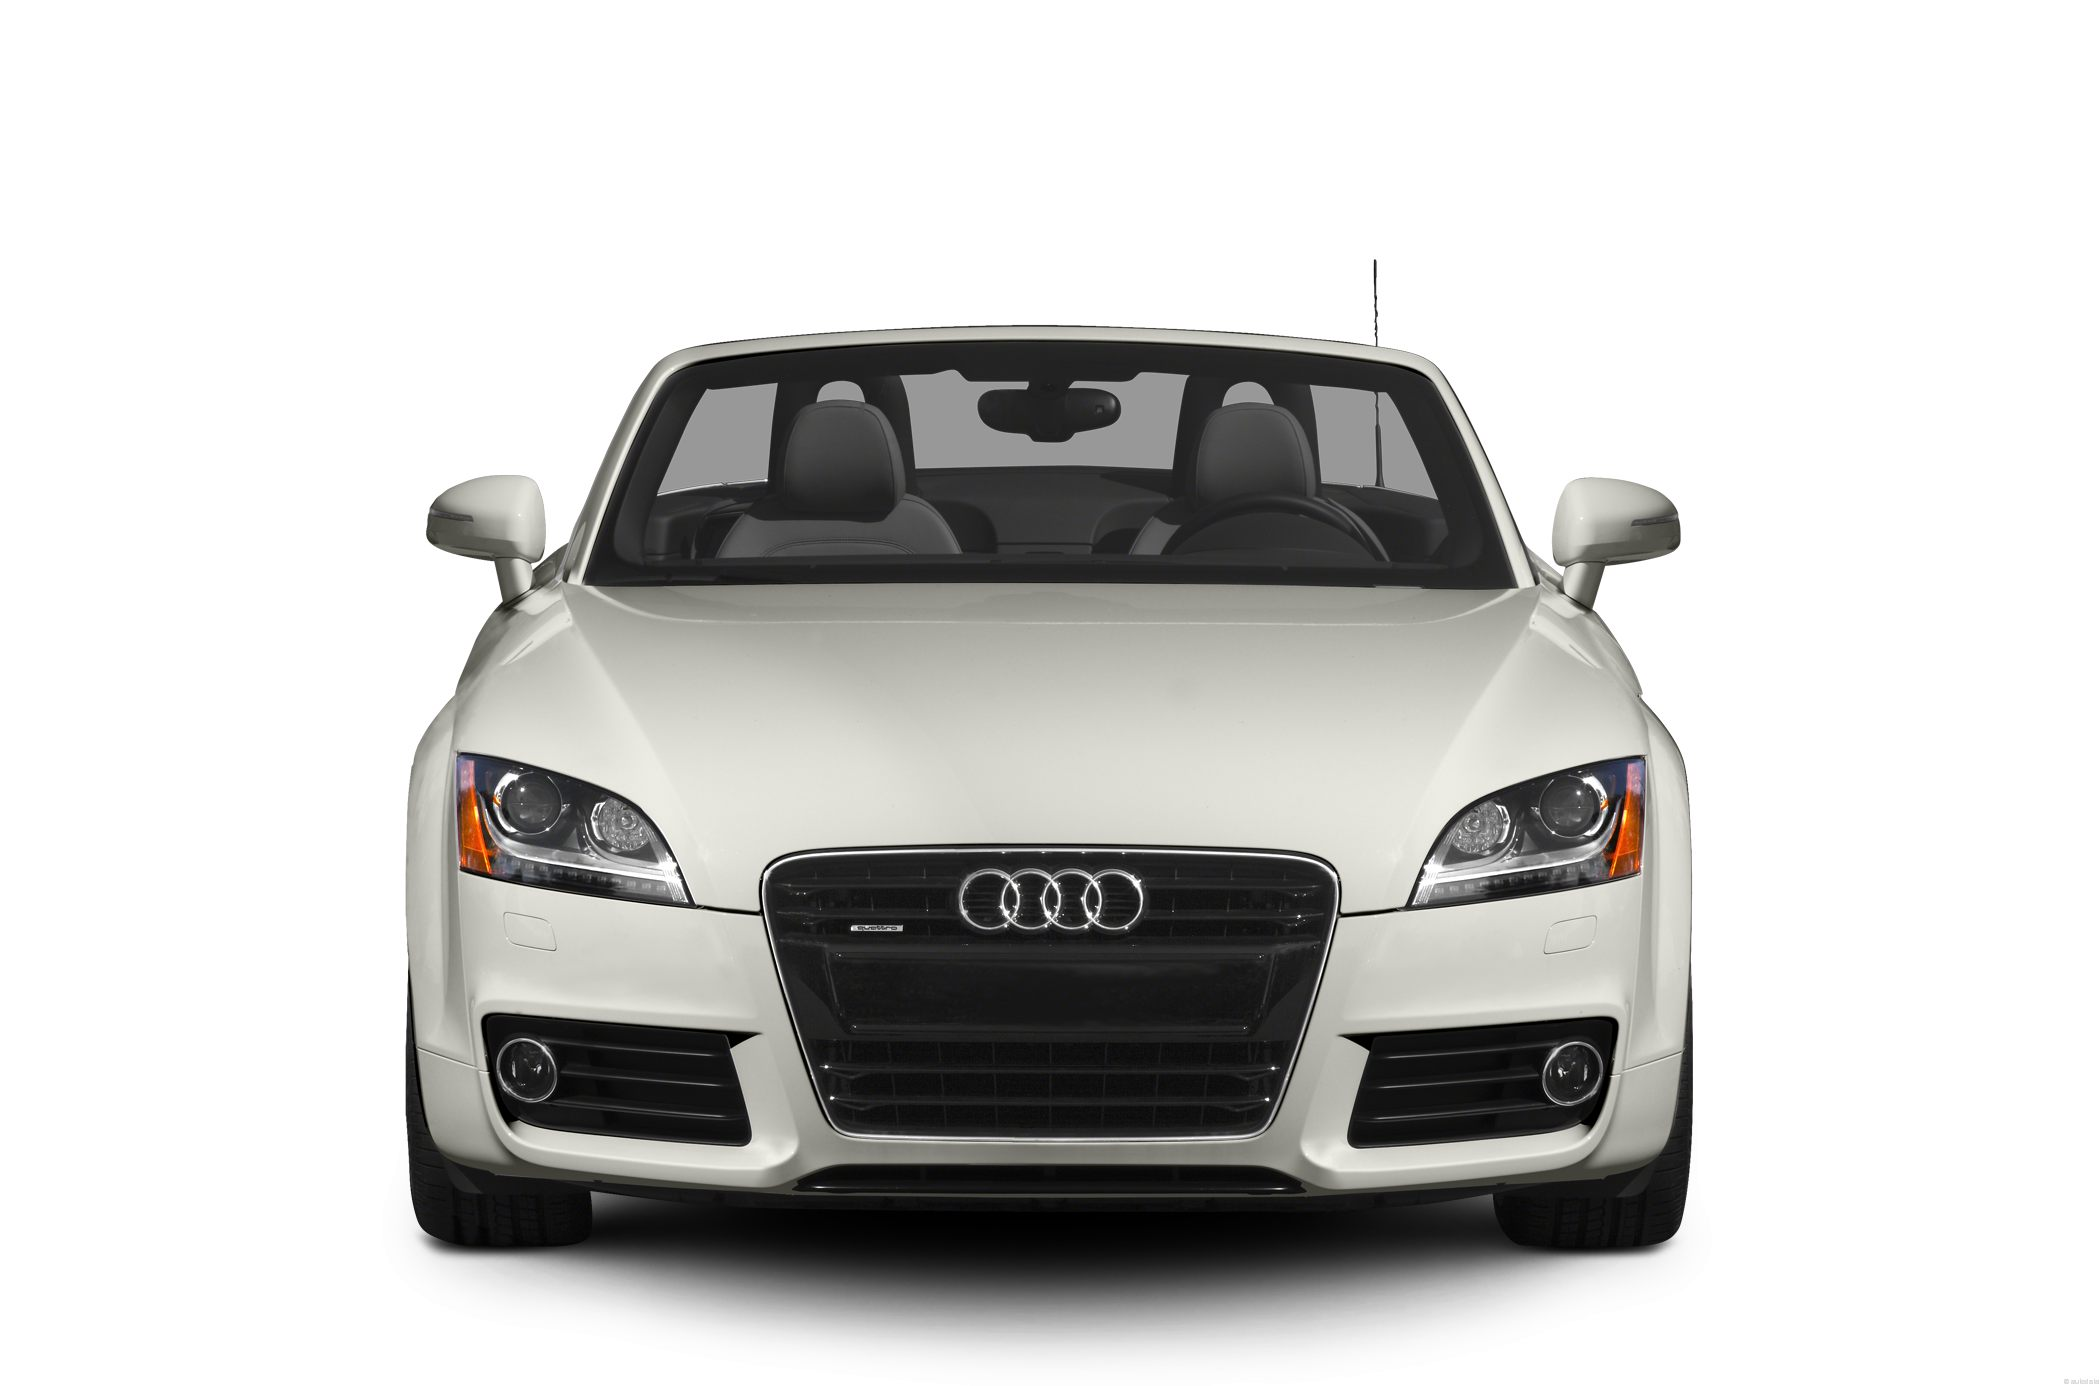 Audi Car Front Png 32716 Free Icons And Png Backgrounds